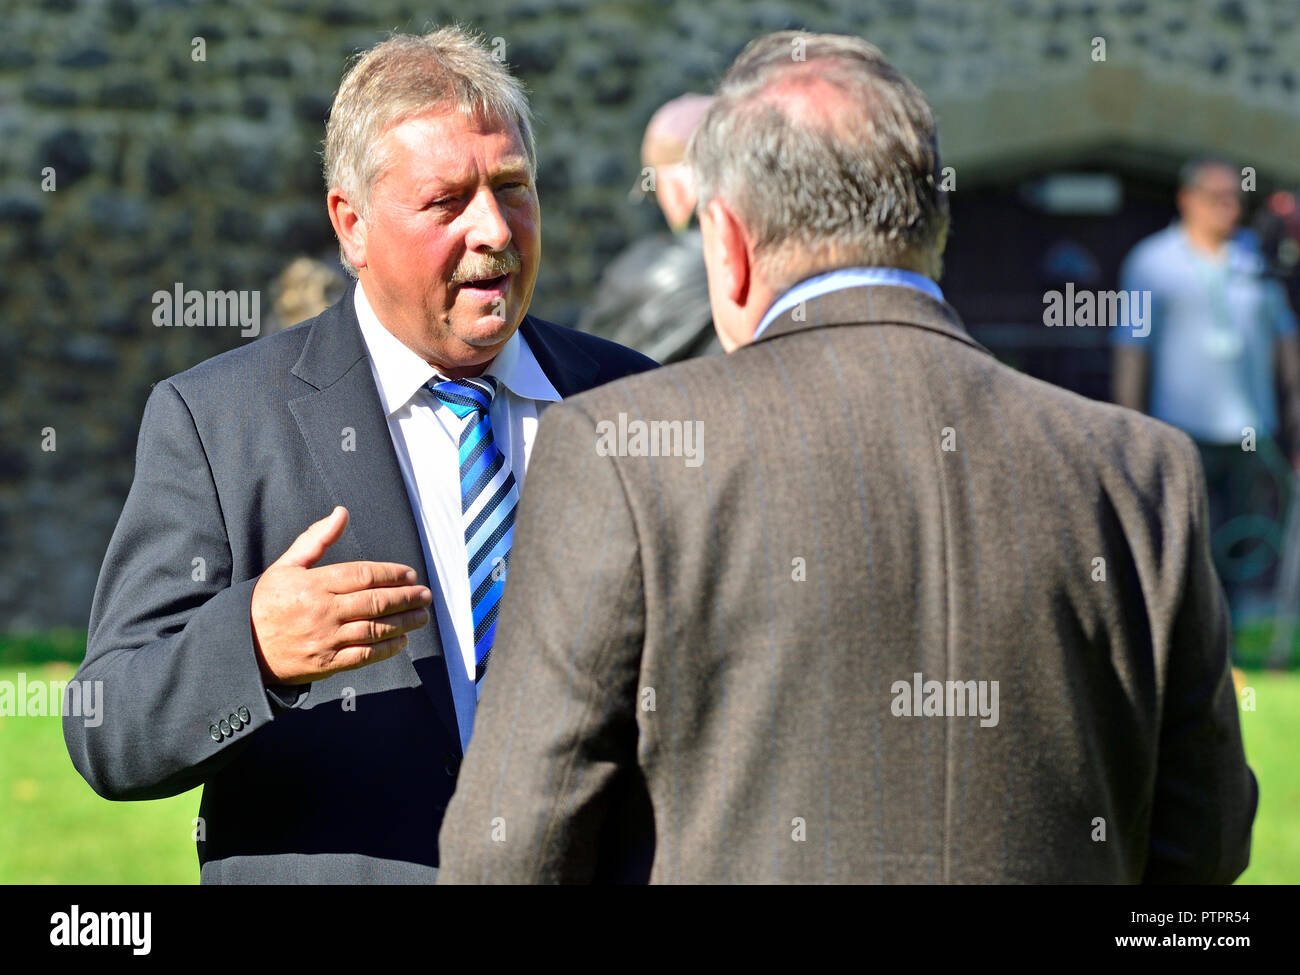 Sammy Wilson MP (DUP: East Antrim) being interviewed on College Green, Westminster, October 2018 - Stock Image